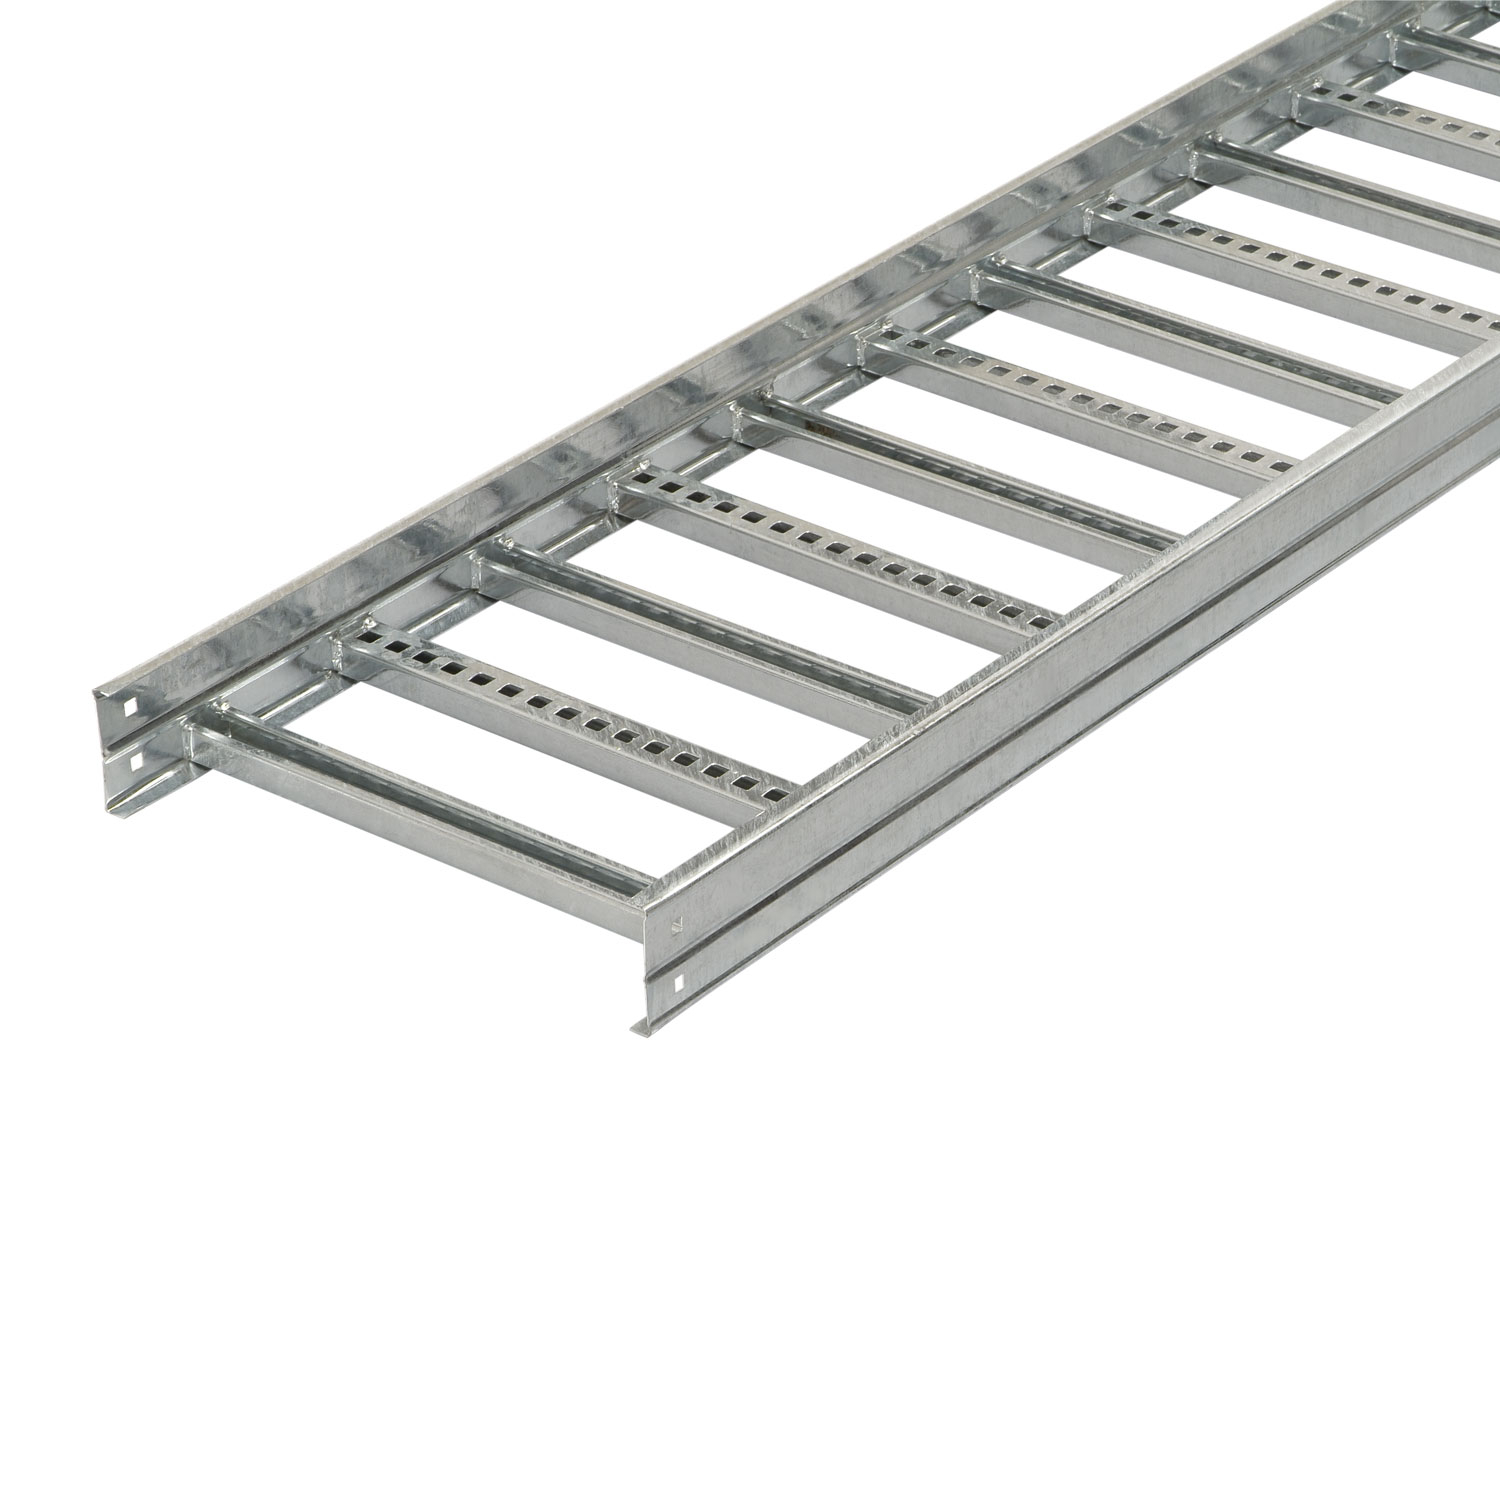 HDG 6INW CHANNEL TRAY